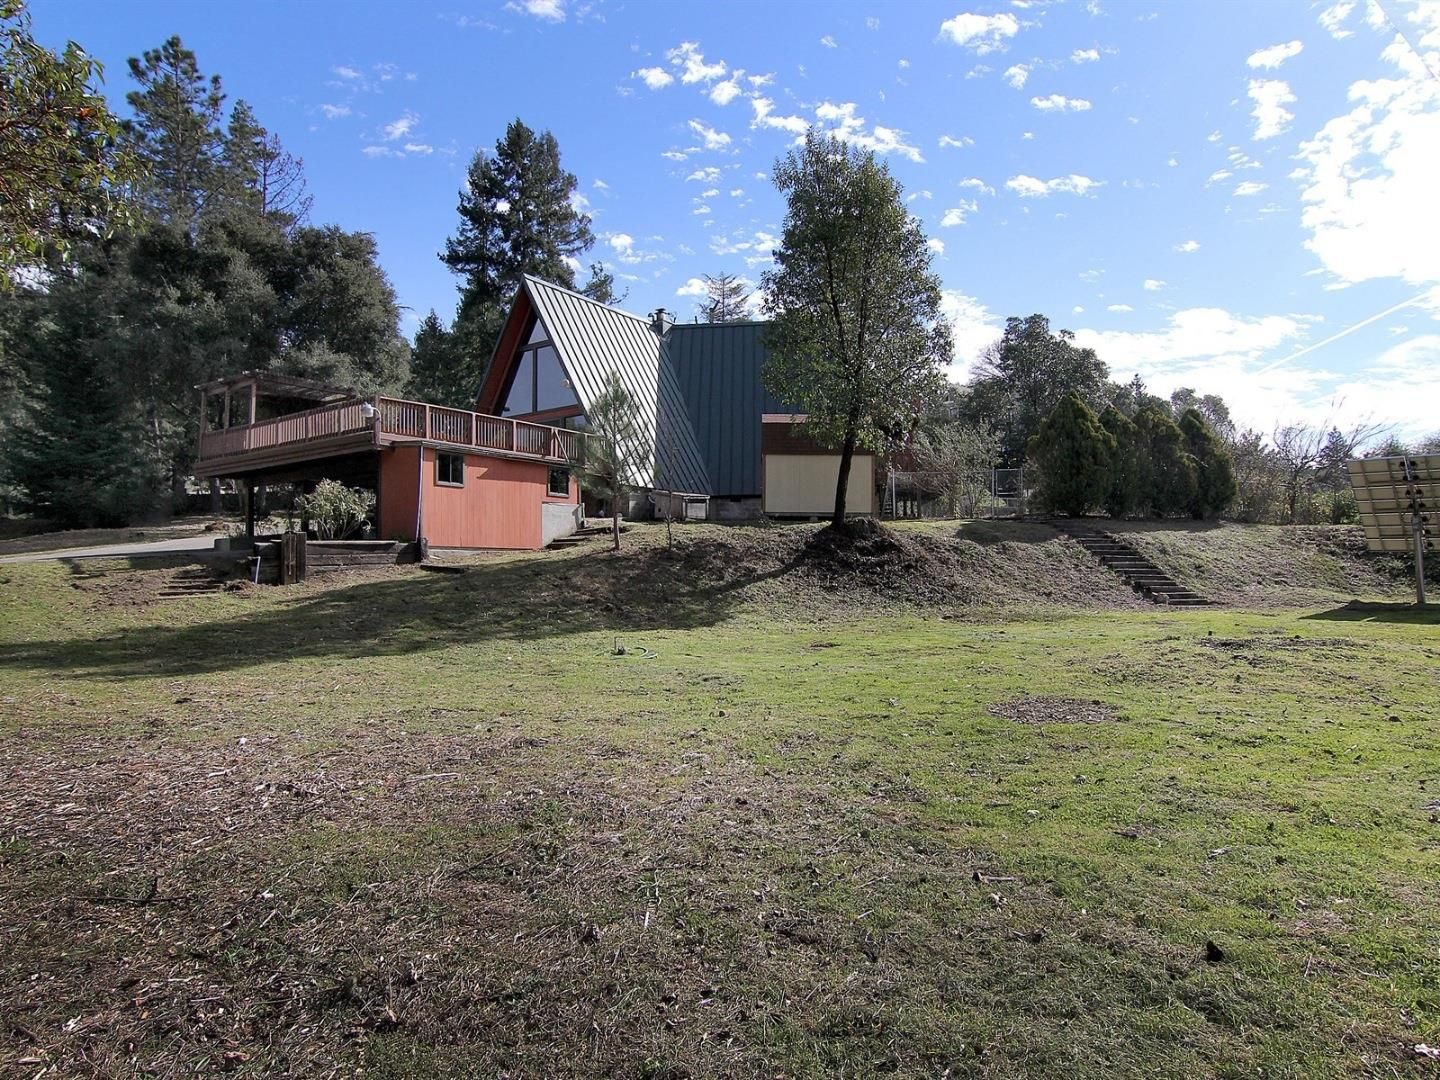 Additional photo for property listing at 60 Old Orchard Rd  LOS GATOS, CALIFORNIA 95033